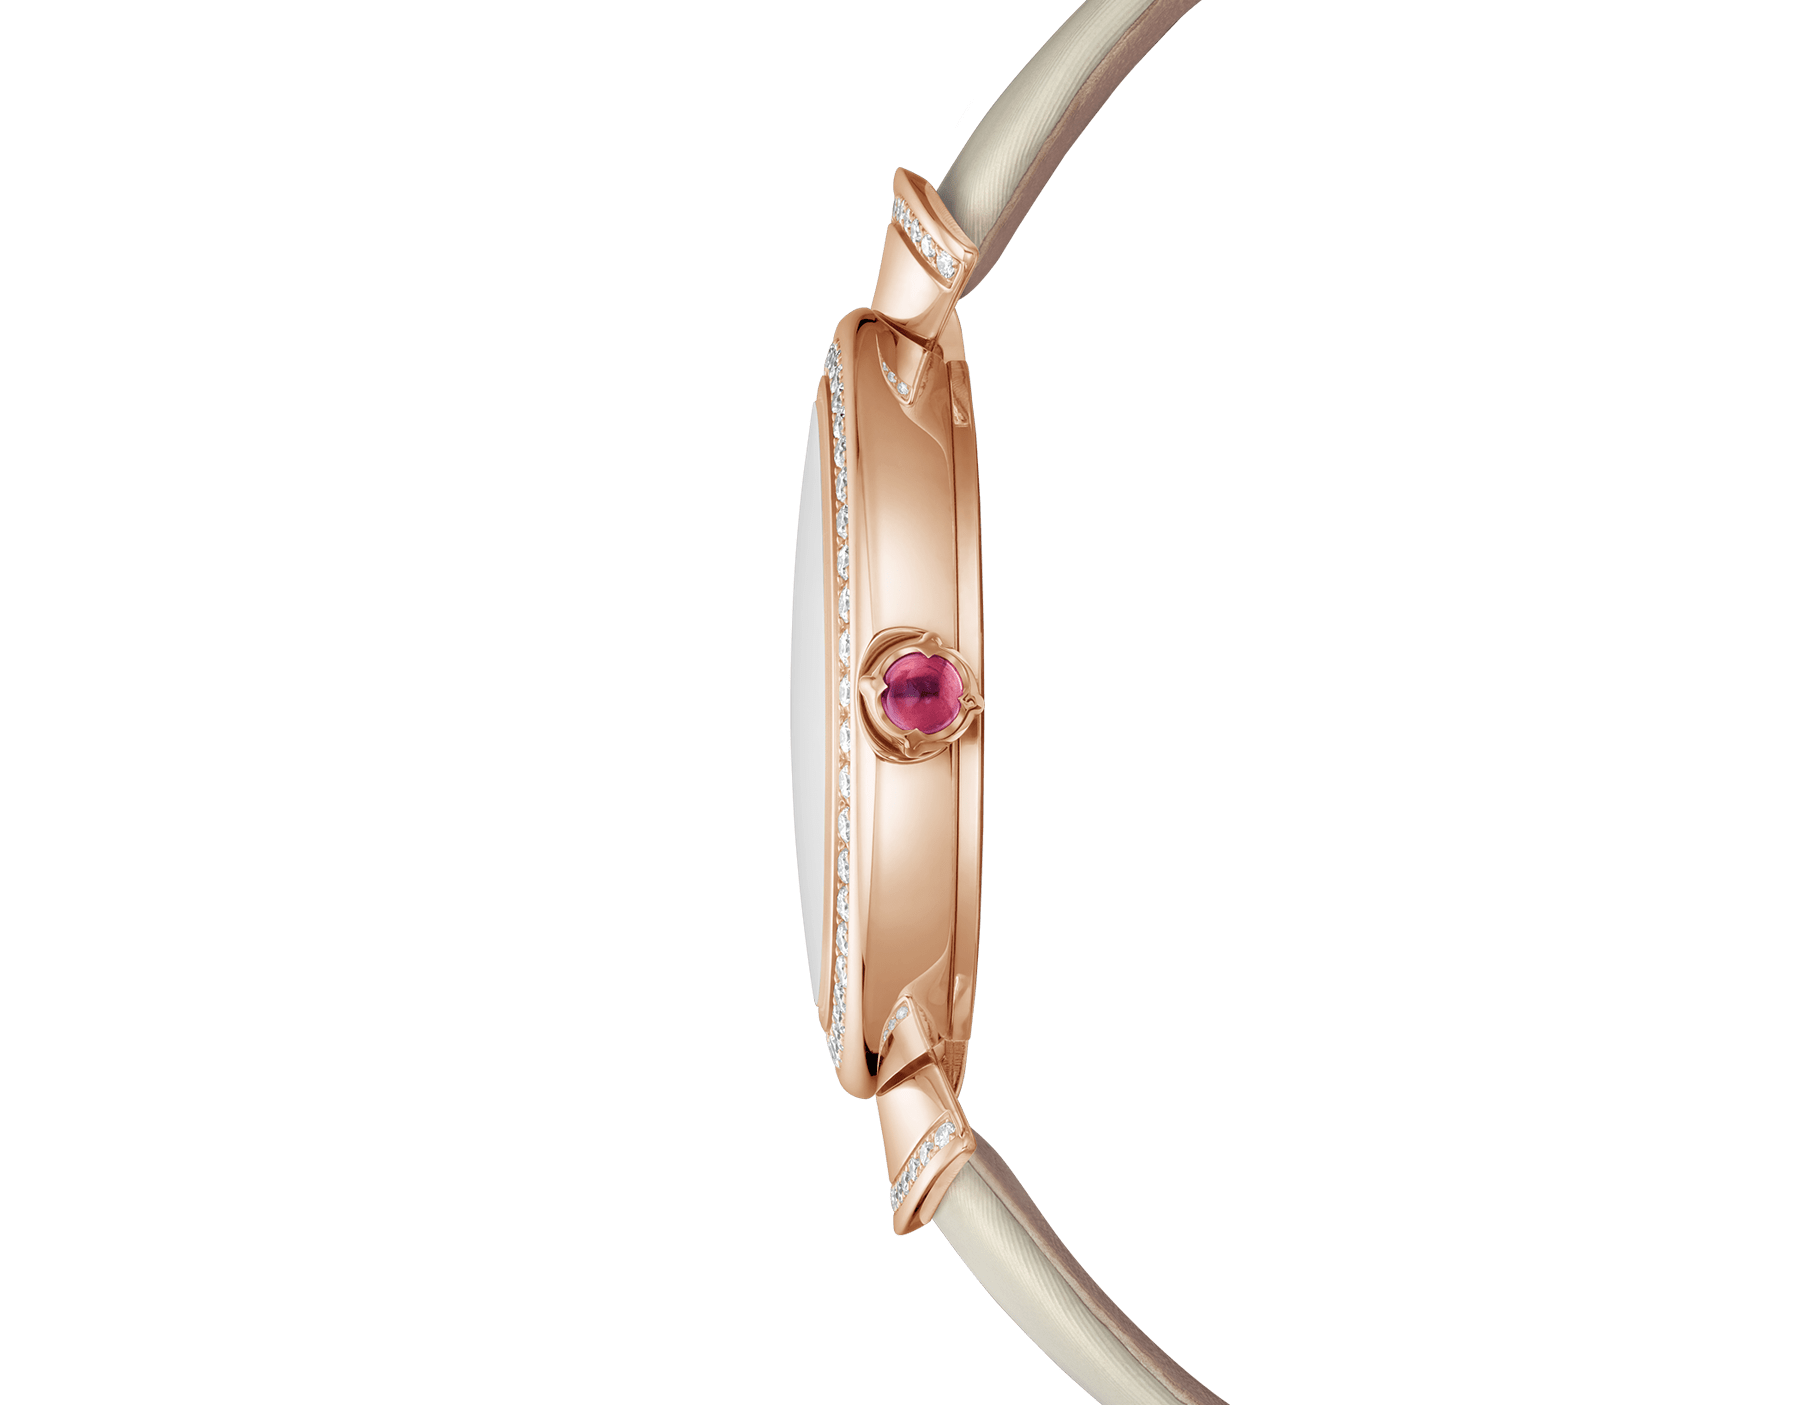 DIVAS' DREAM watch with 18 kt rose gold case set with brilliant-cut diamonds, natural acetate dial, diamond indexes and bronze satin bracelet 102435 image 3